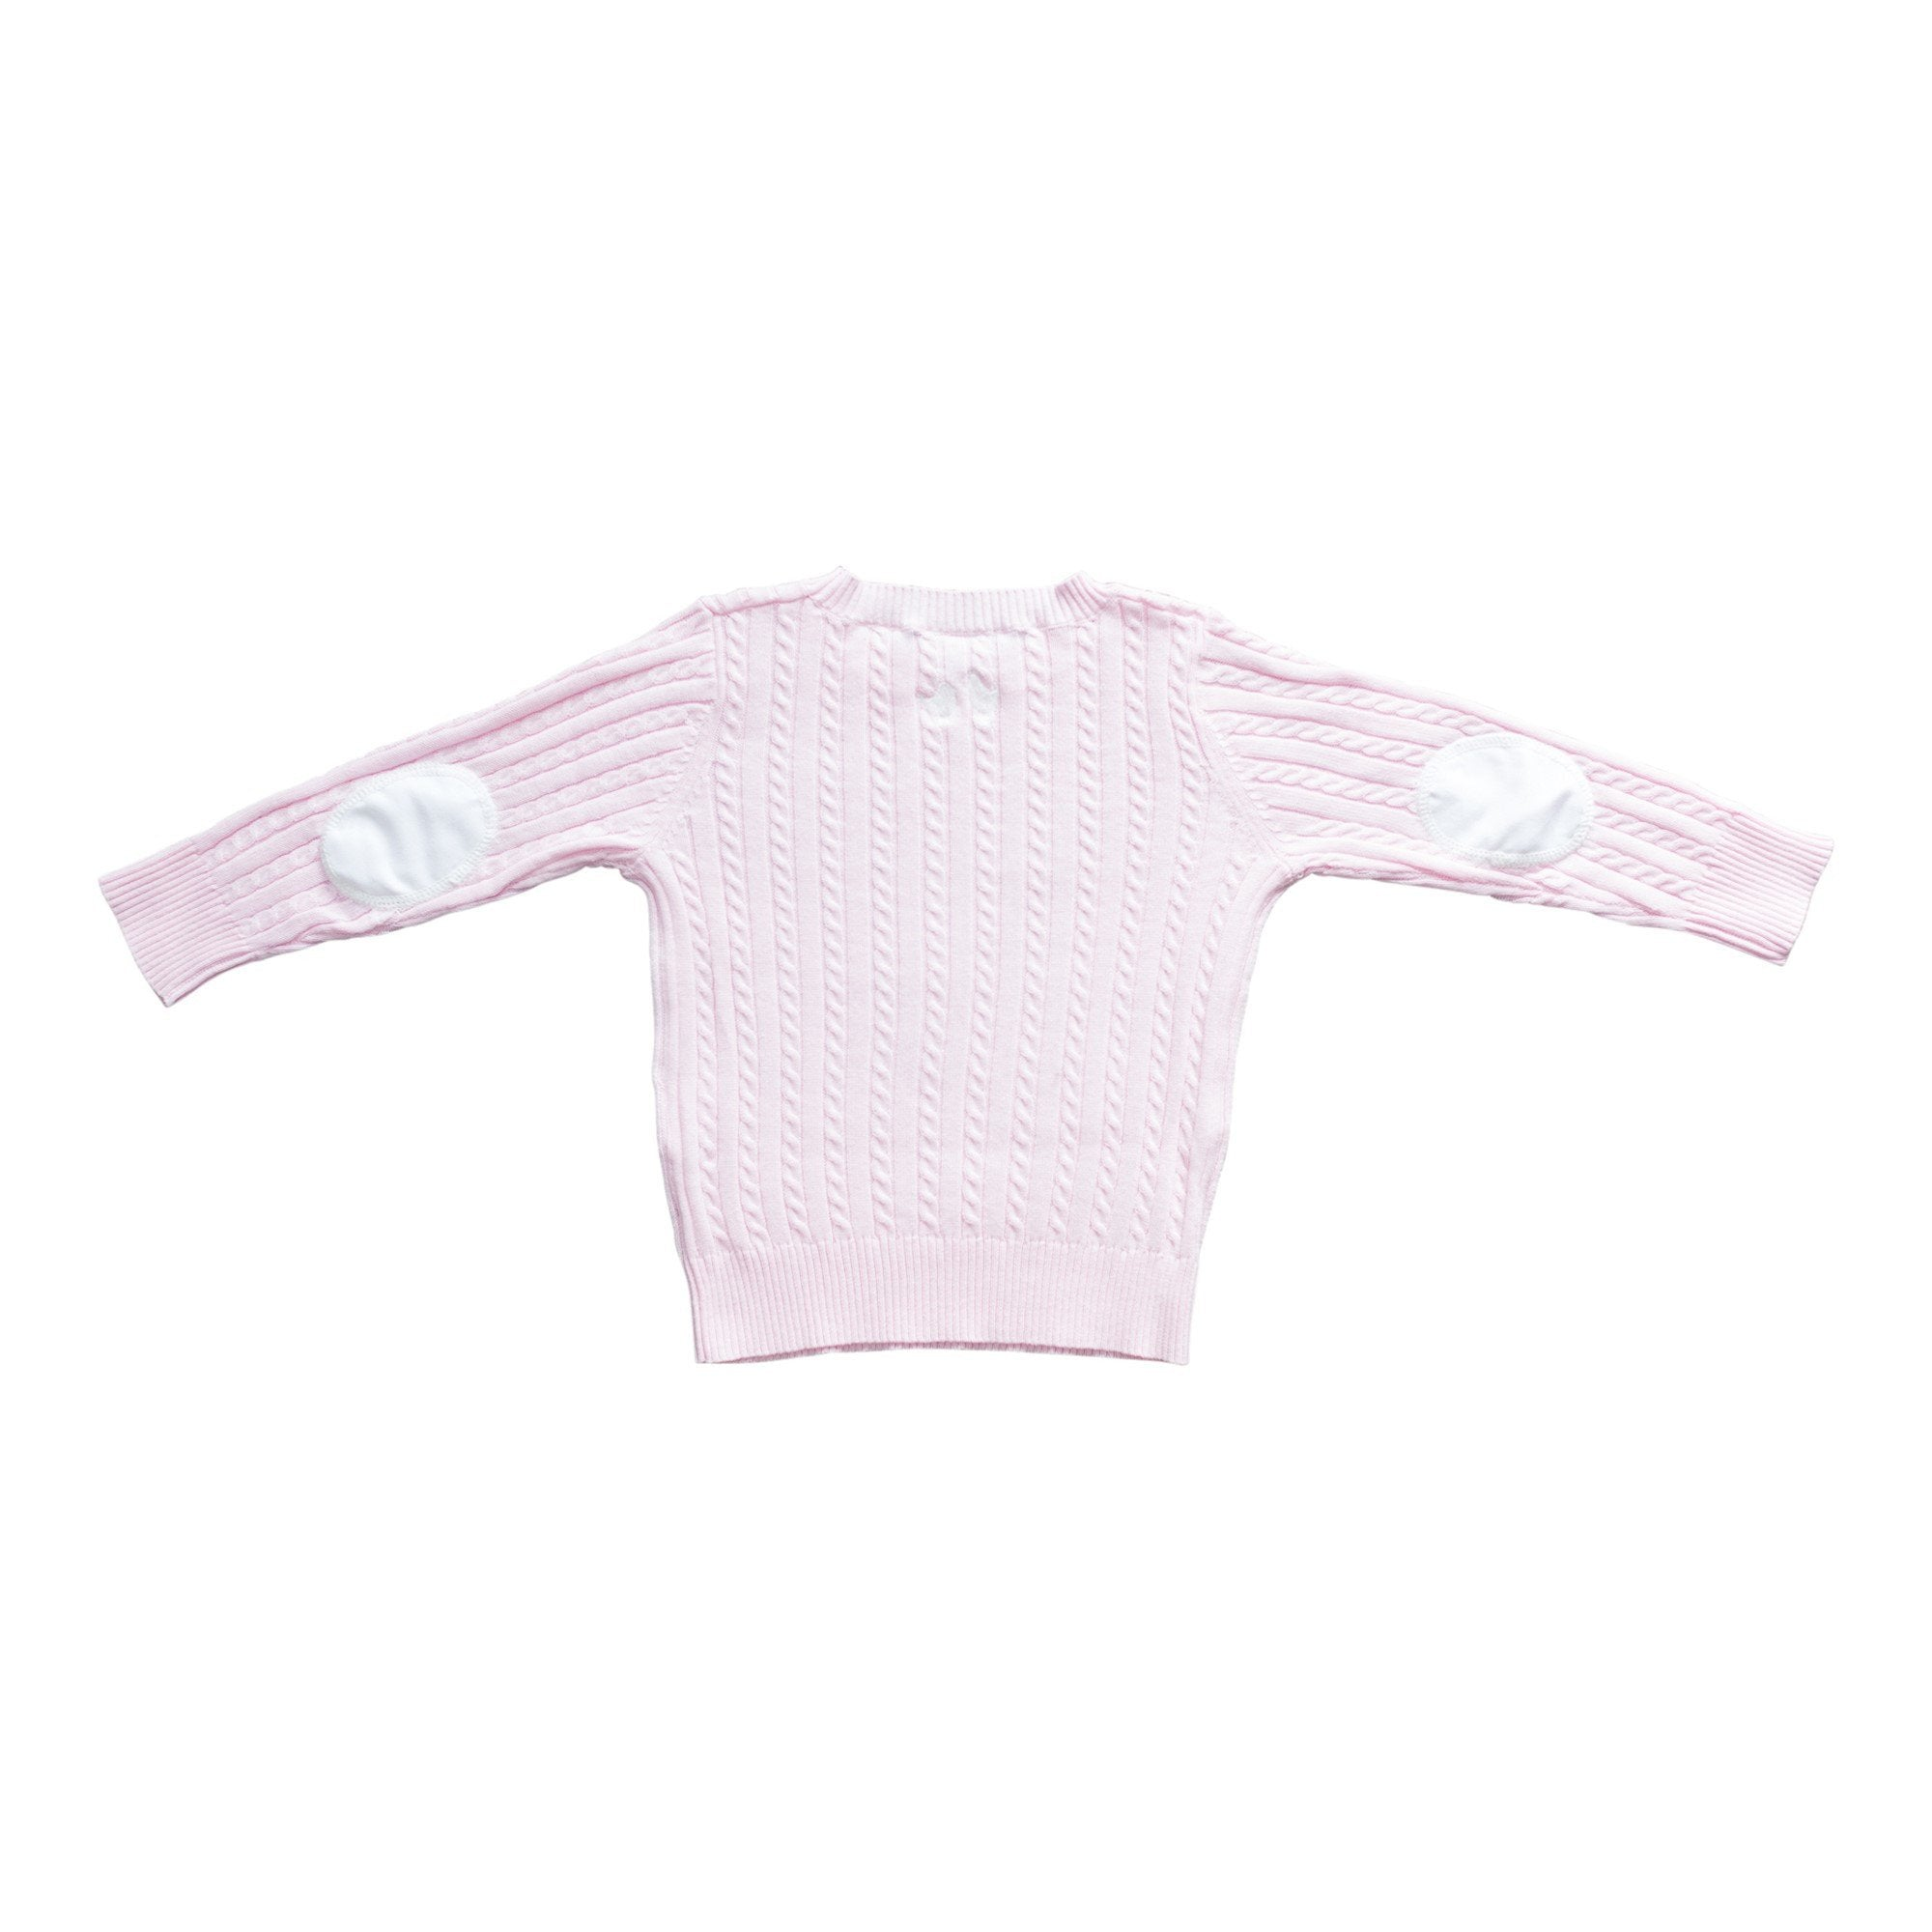 PINK COTTON CABLE KNIT JUMPER